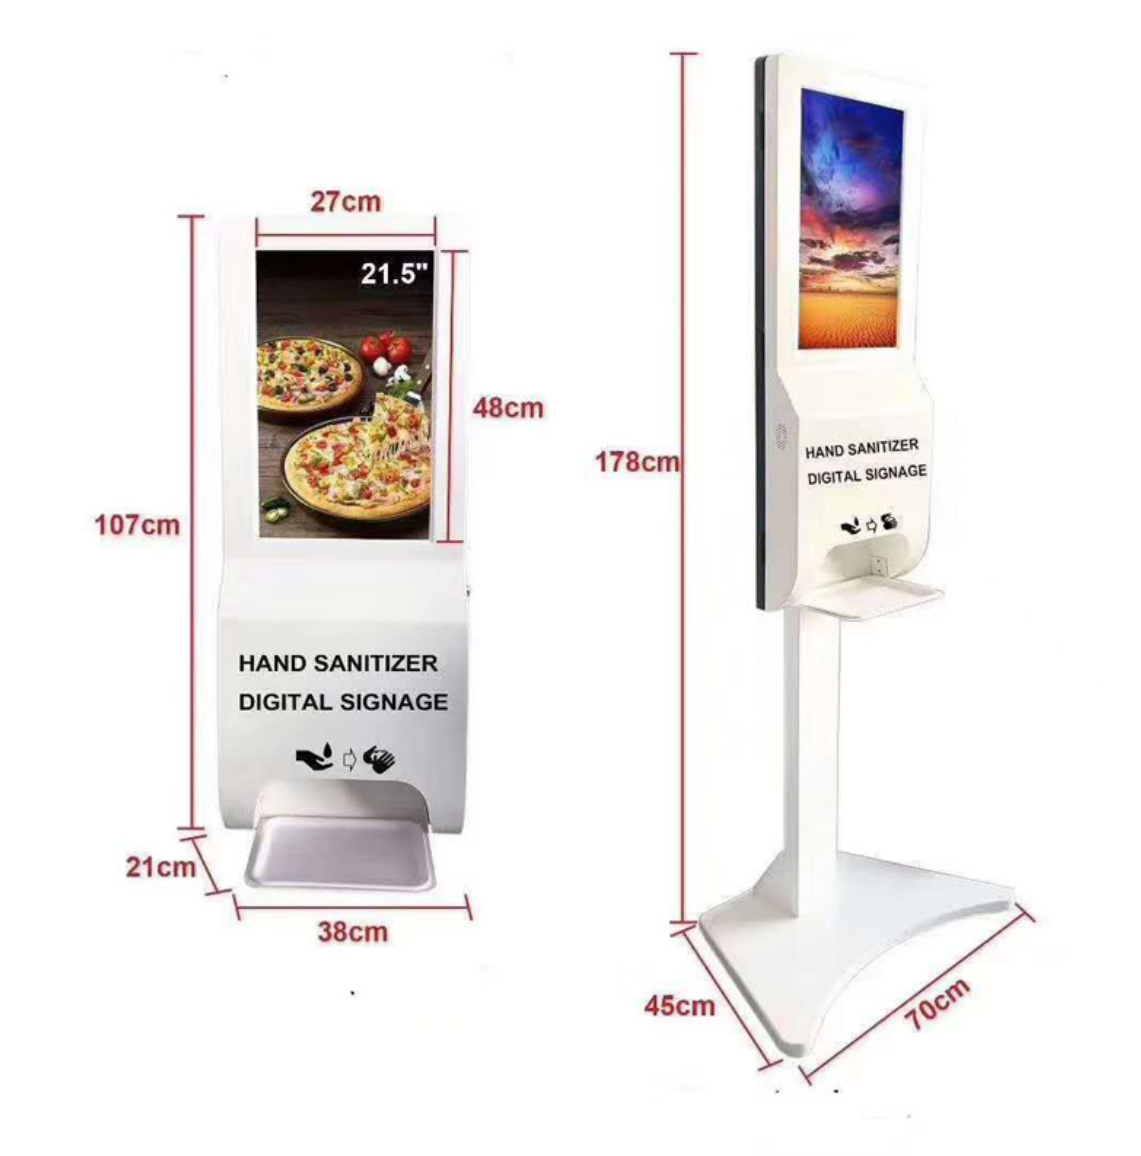 Digital Signage floor stand disinfection automatic hand sanitizer dispenser touch kiosk